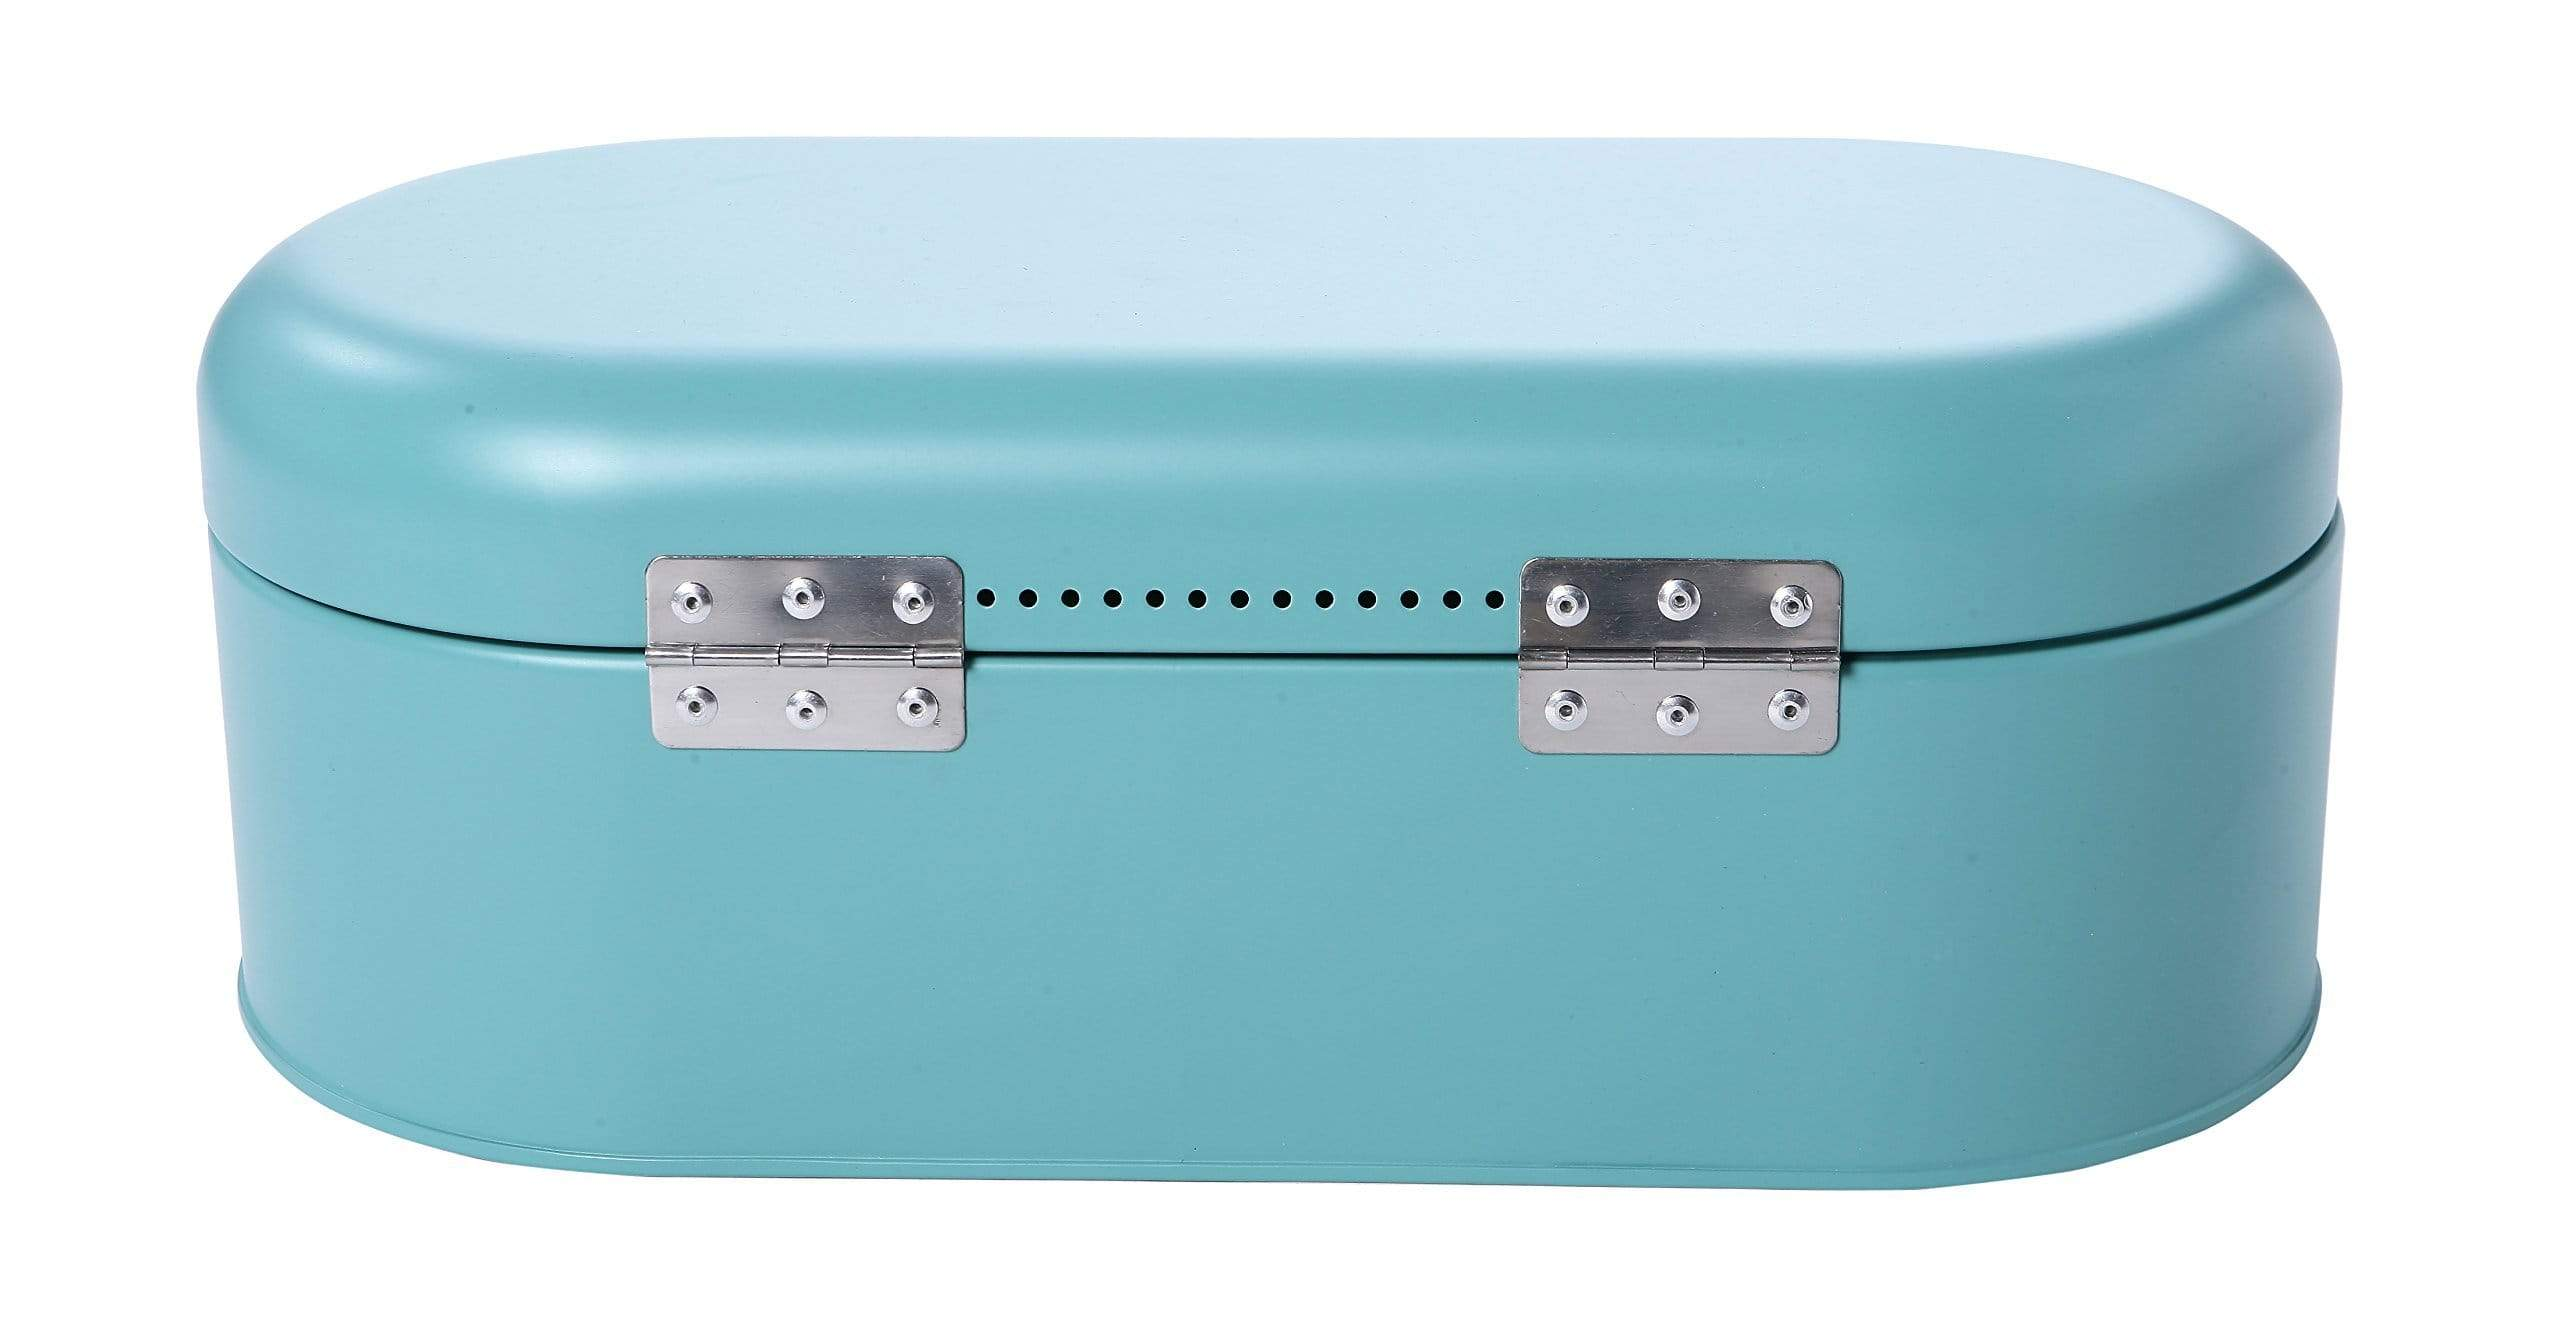 Order now large bread box for kitchen counter bread bin storage container with lid metal vintage retro design for loaves sliced bread pastries teal 17 x 9 x 6 inches